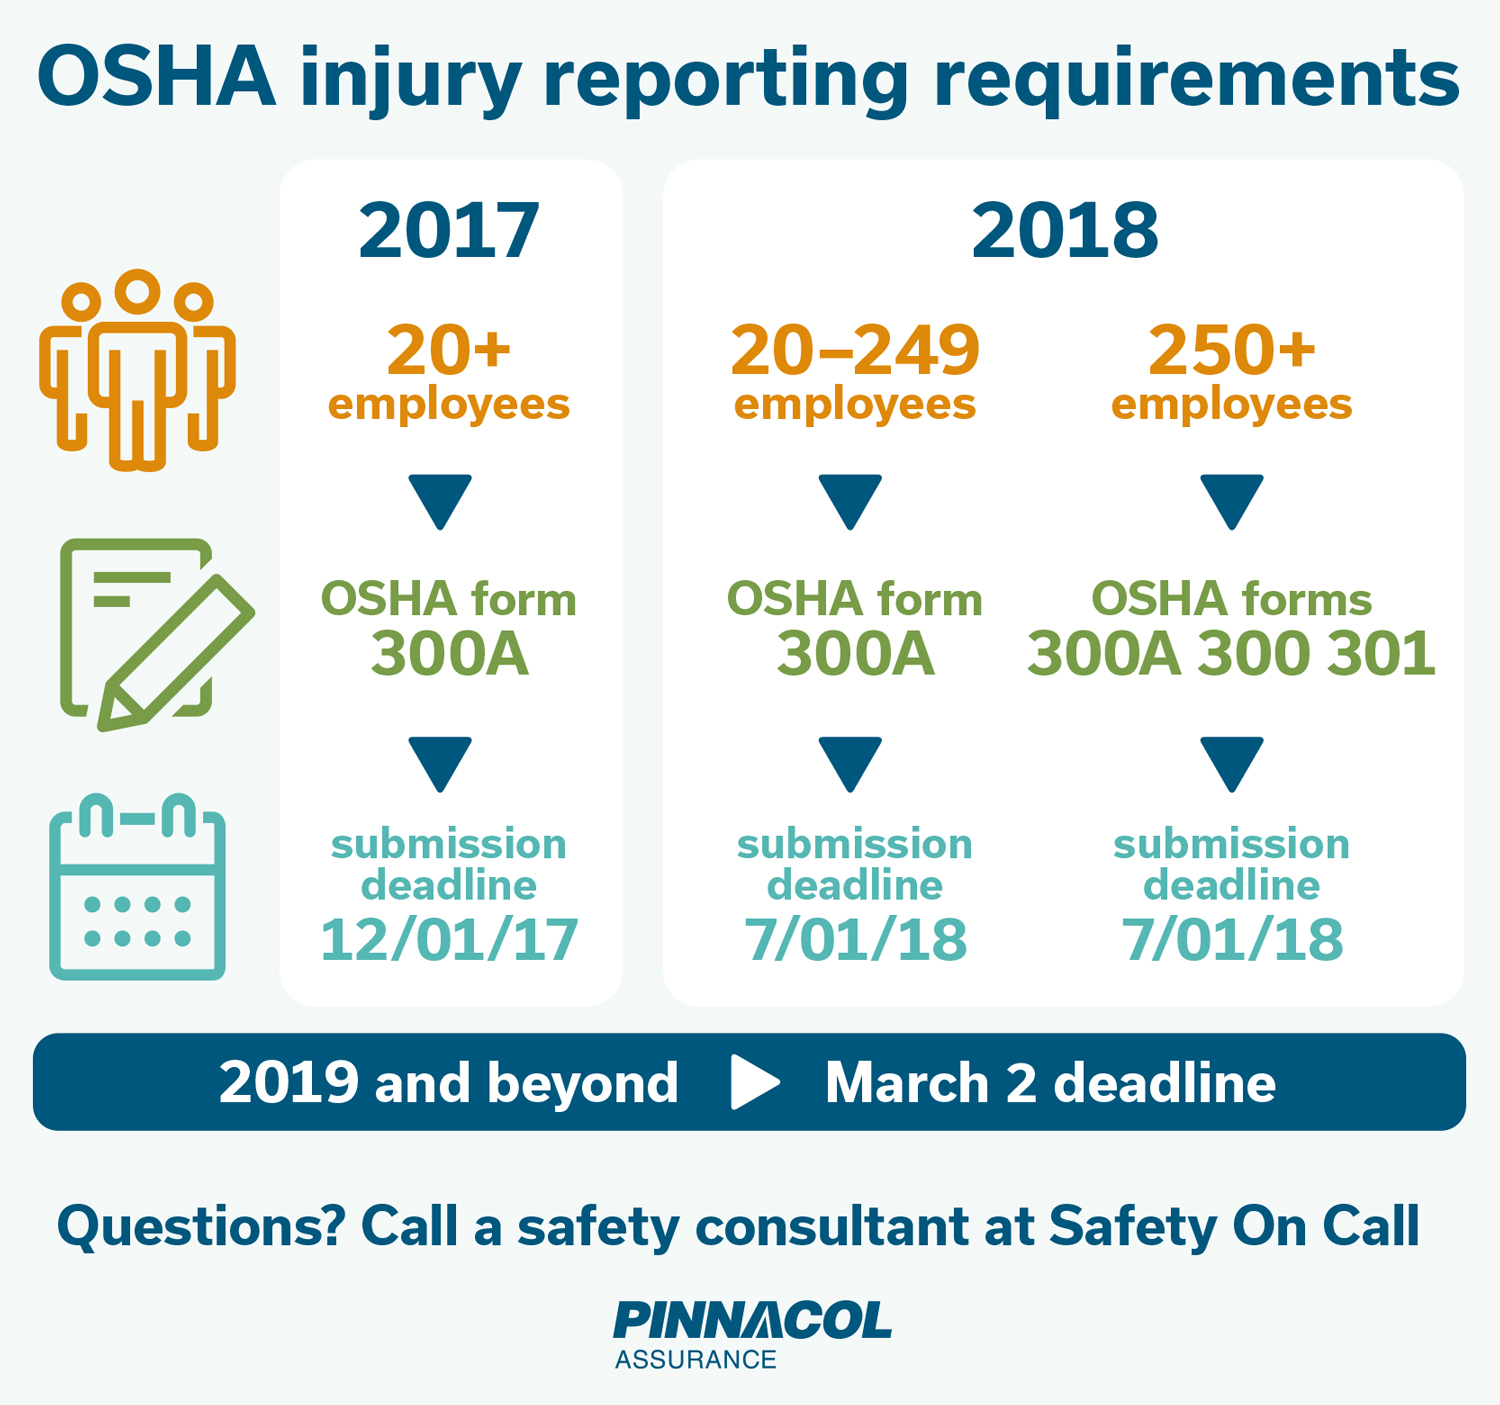 OSHA injury reporting requirement